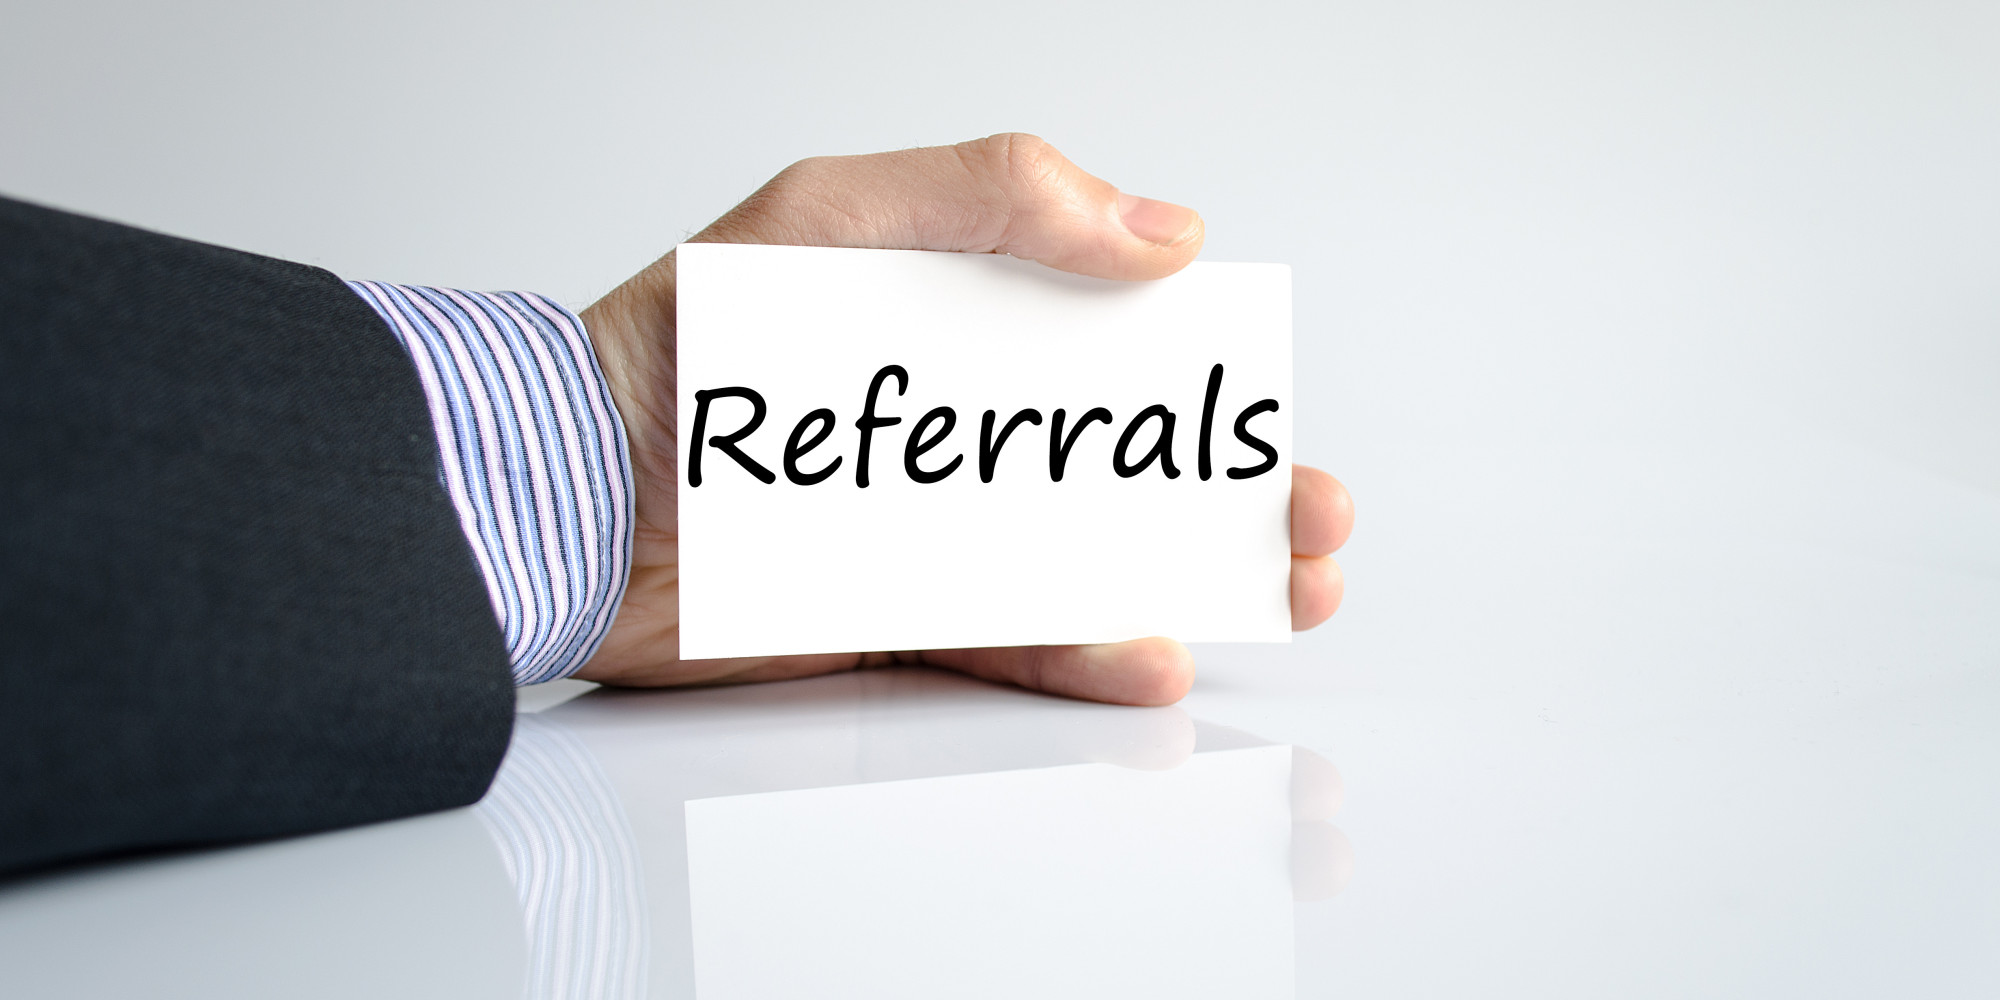 Referrals, referrals, referrals…. sell more cars by asking for referrals.